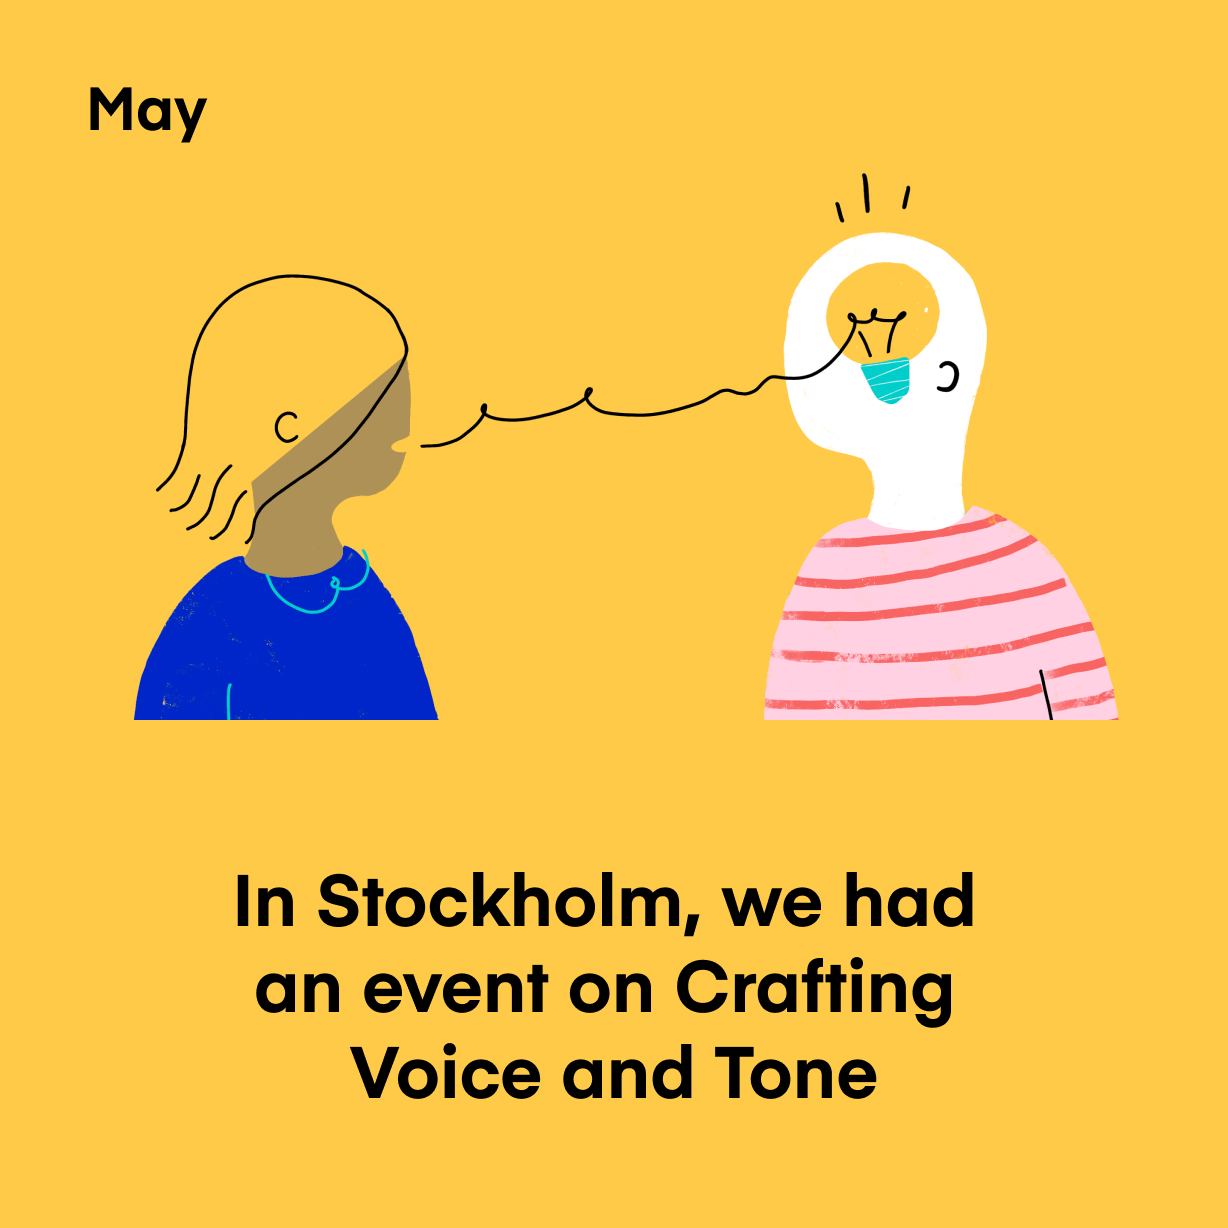 In Stockholm, we had an event on Crafting Voice and Tone